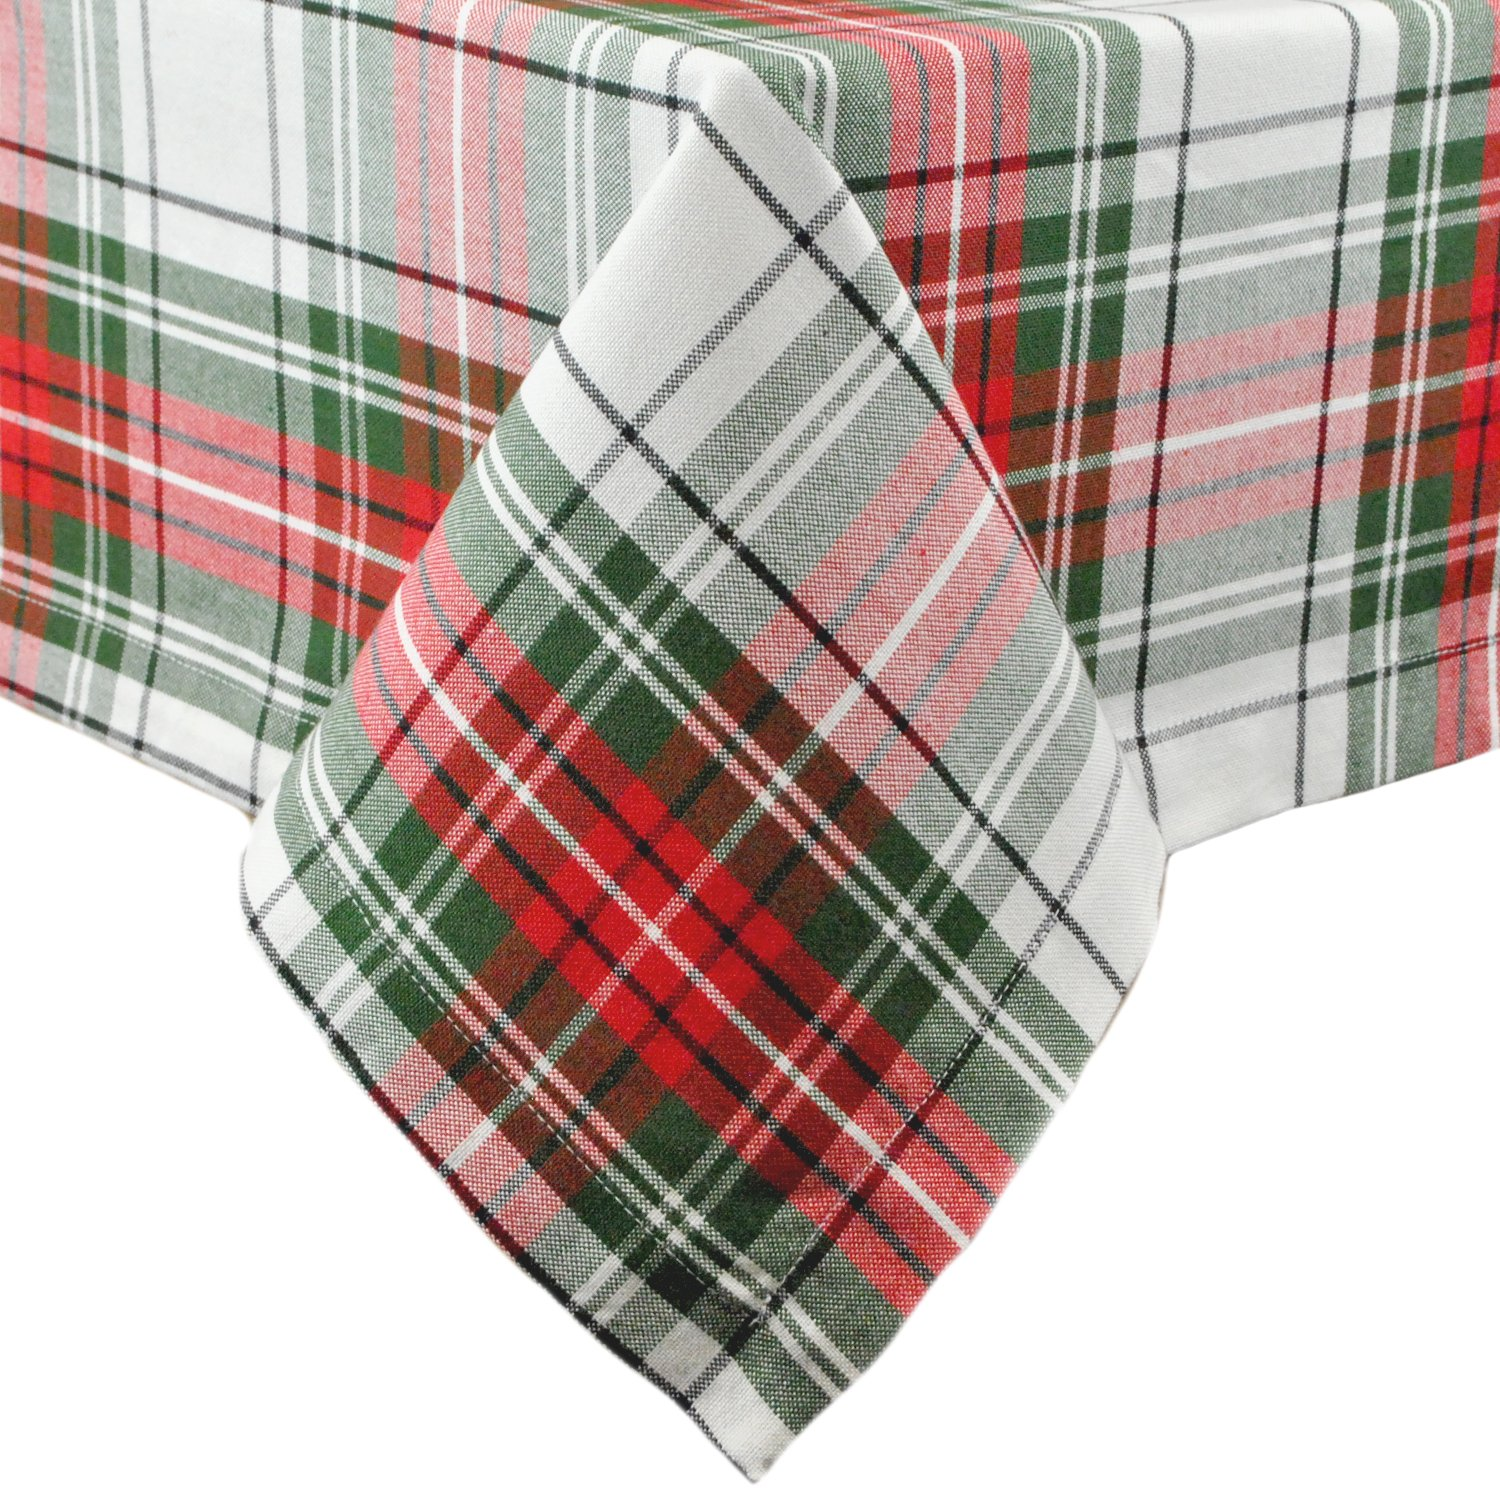 DII 60x120'' Rectangular Cotton Tablecloth, Christmas Plaid - Perfect for Dinner Parties, Christmas, Holidays, or Everyday use by DII